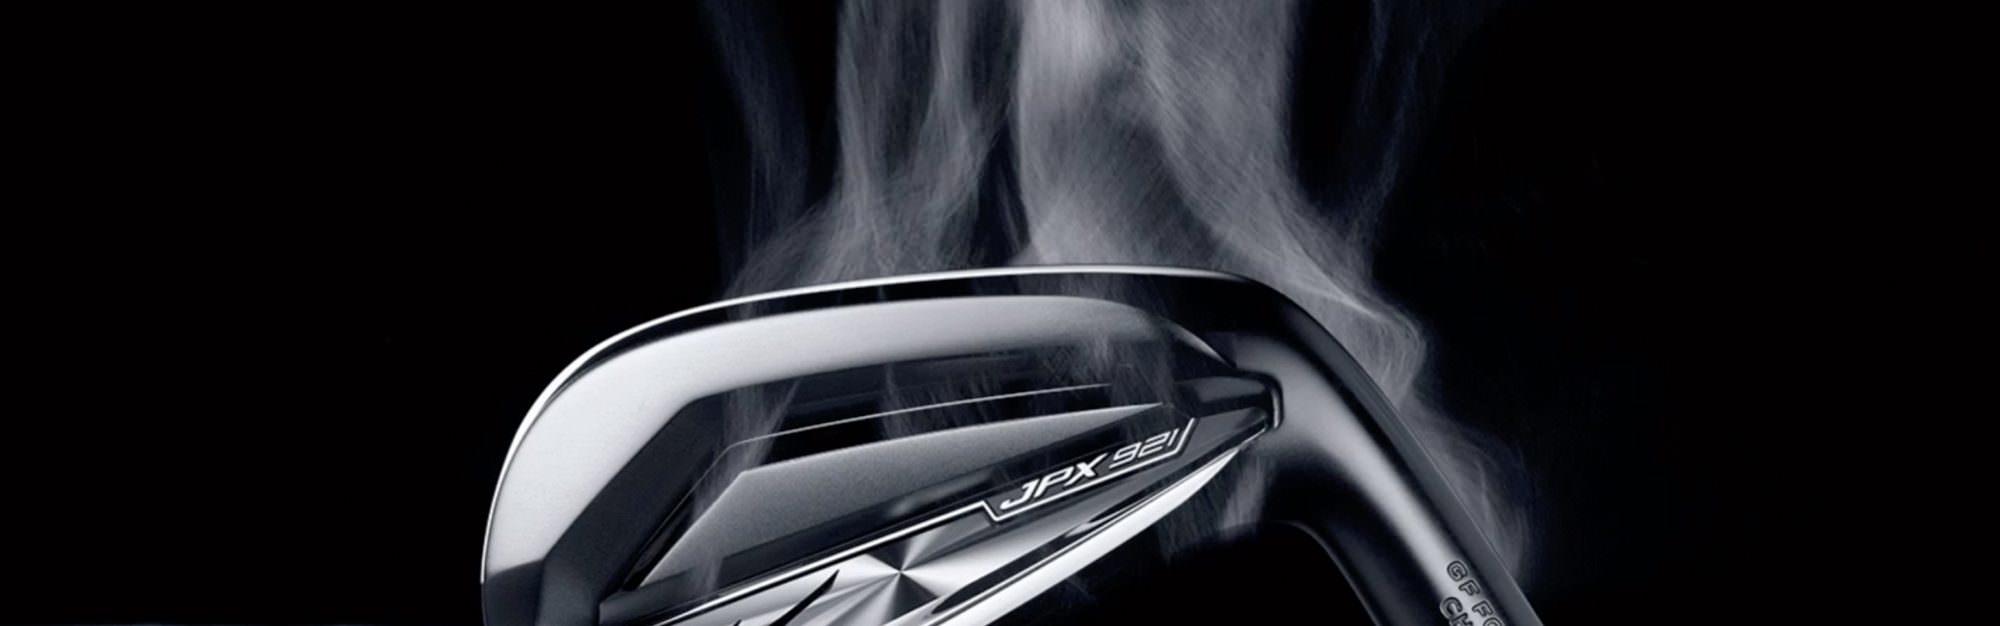 All the Gear: Mizuno tease new irons, and FootJoy get a 'pizza' the action